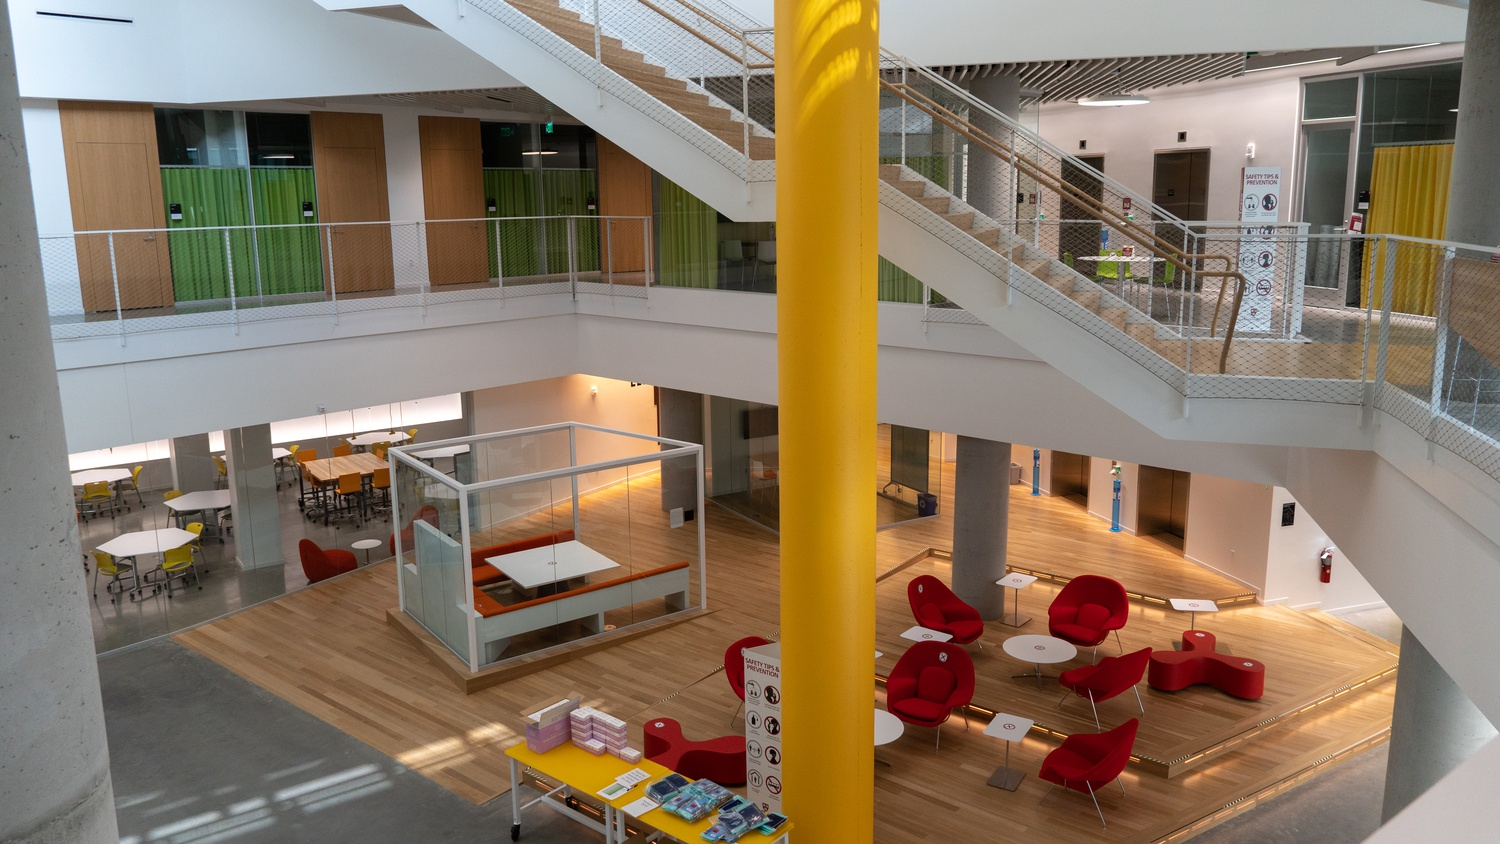 The central open space of the bottom floor serves as a dedicated study lounge for undergraduates.